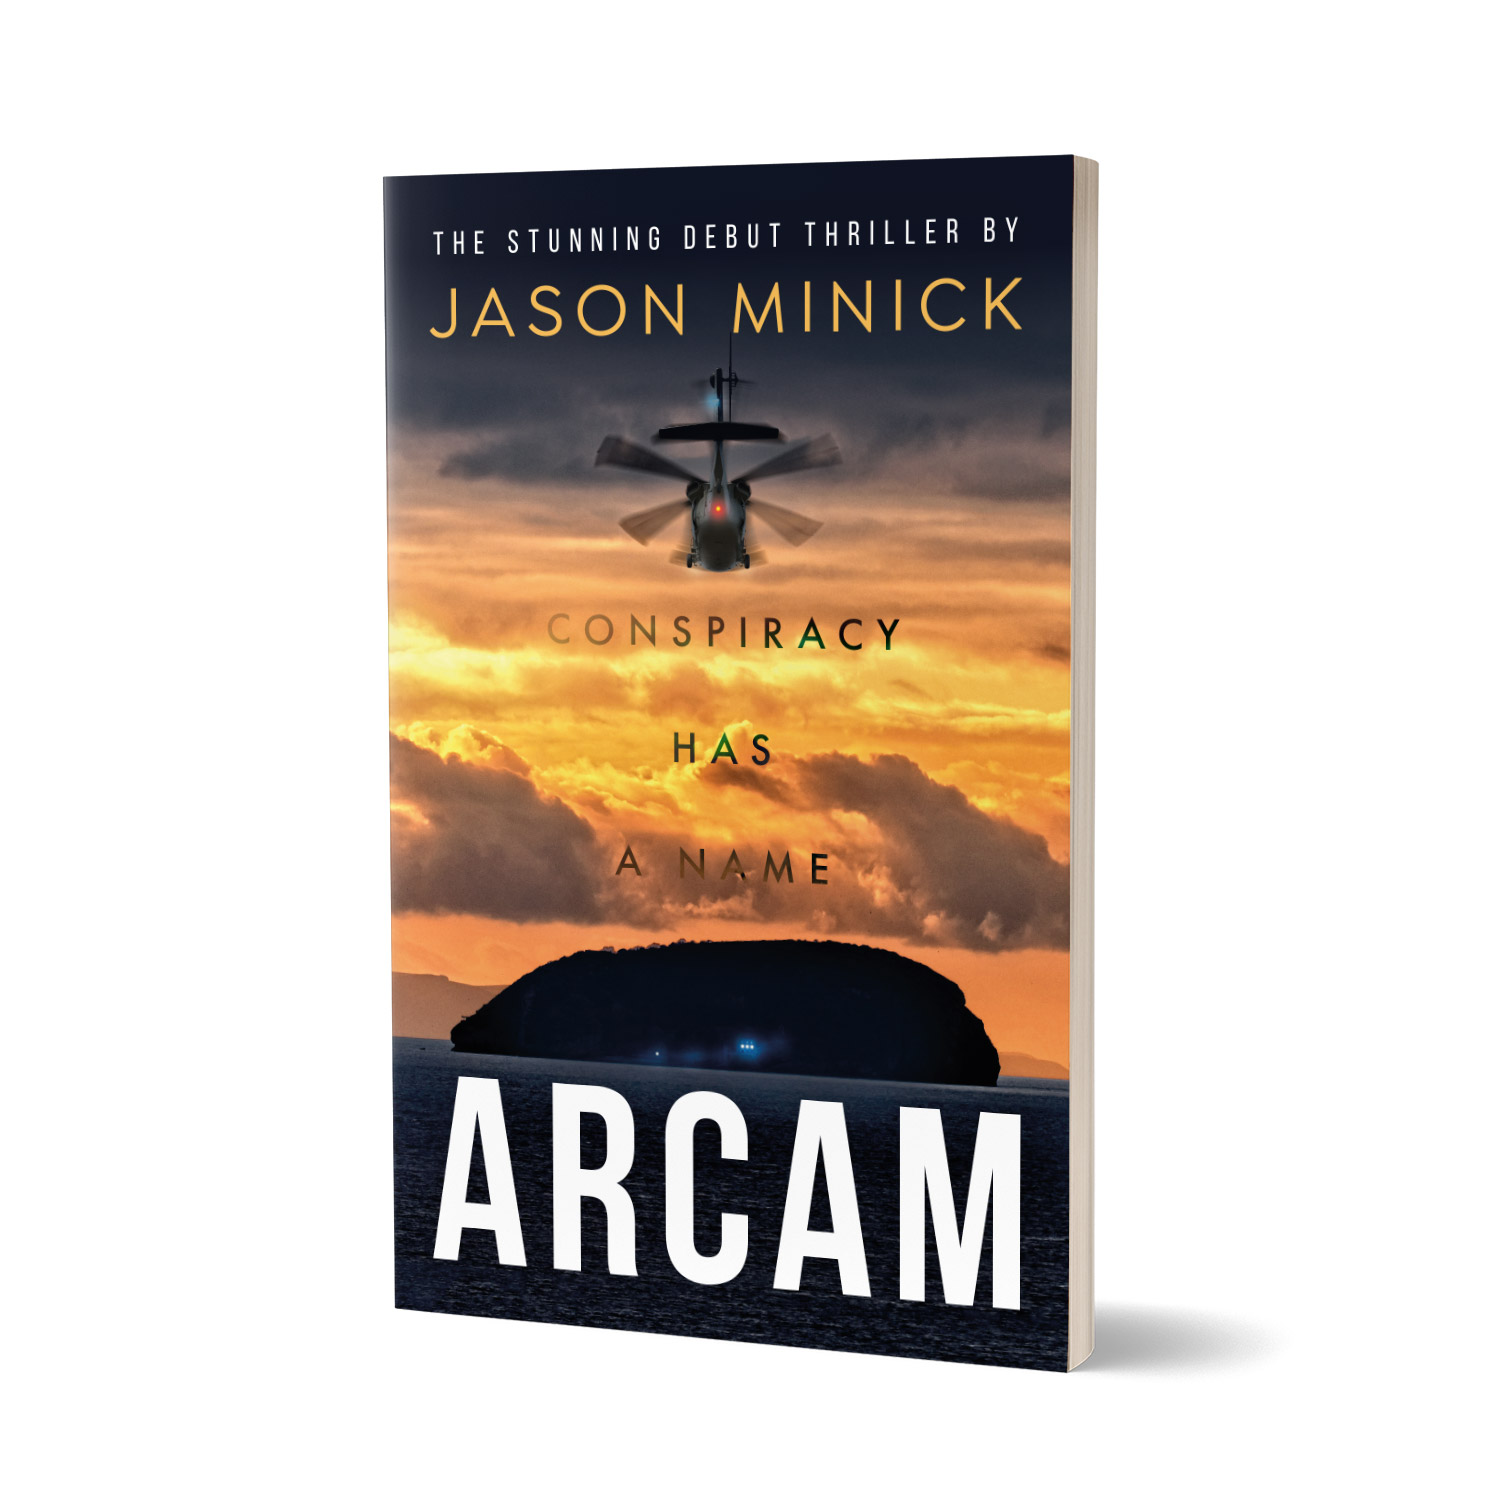 'ARCAM' is a mystery thriller on an epic scale, by Jason Minick. The book cover and interior were designed by Mark Thomas, of coverness.com. To find out more about my book design services, please visit www.coverness.com.